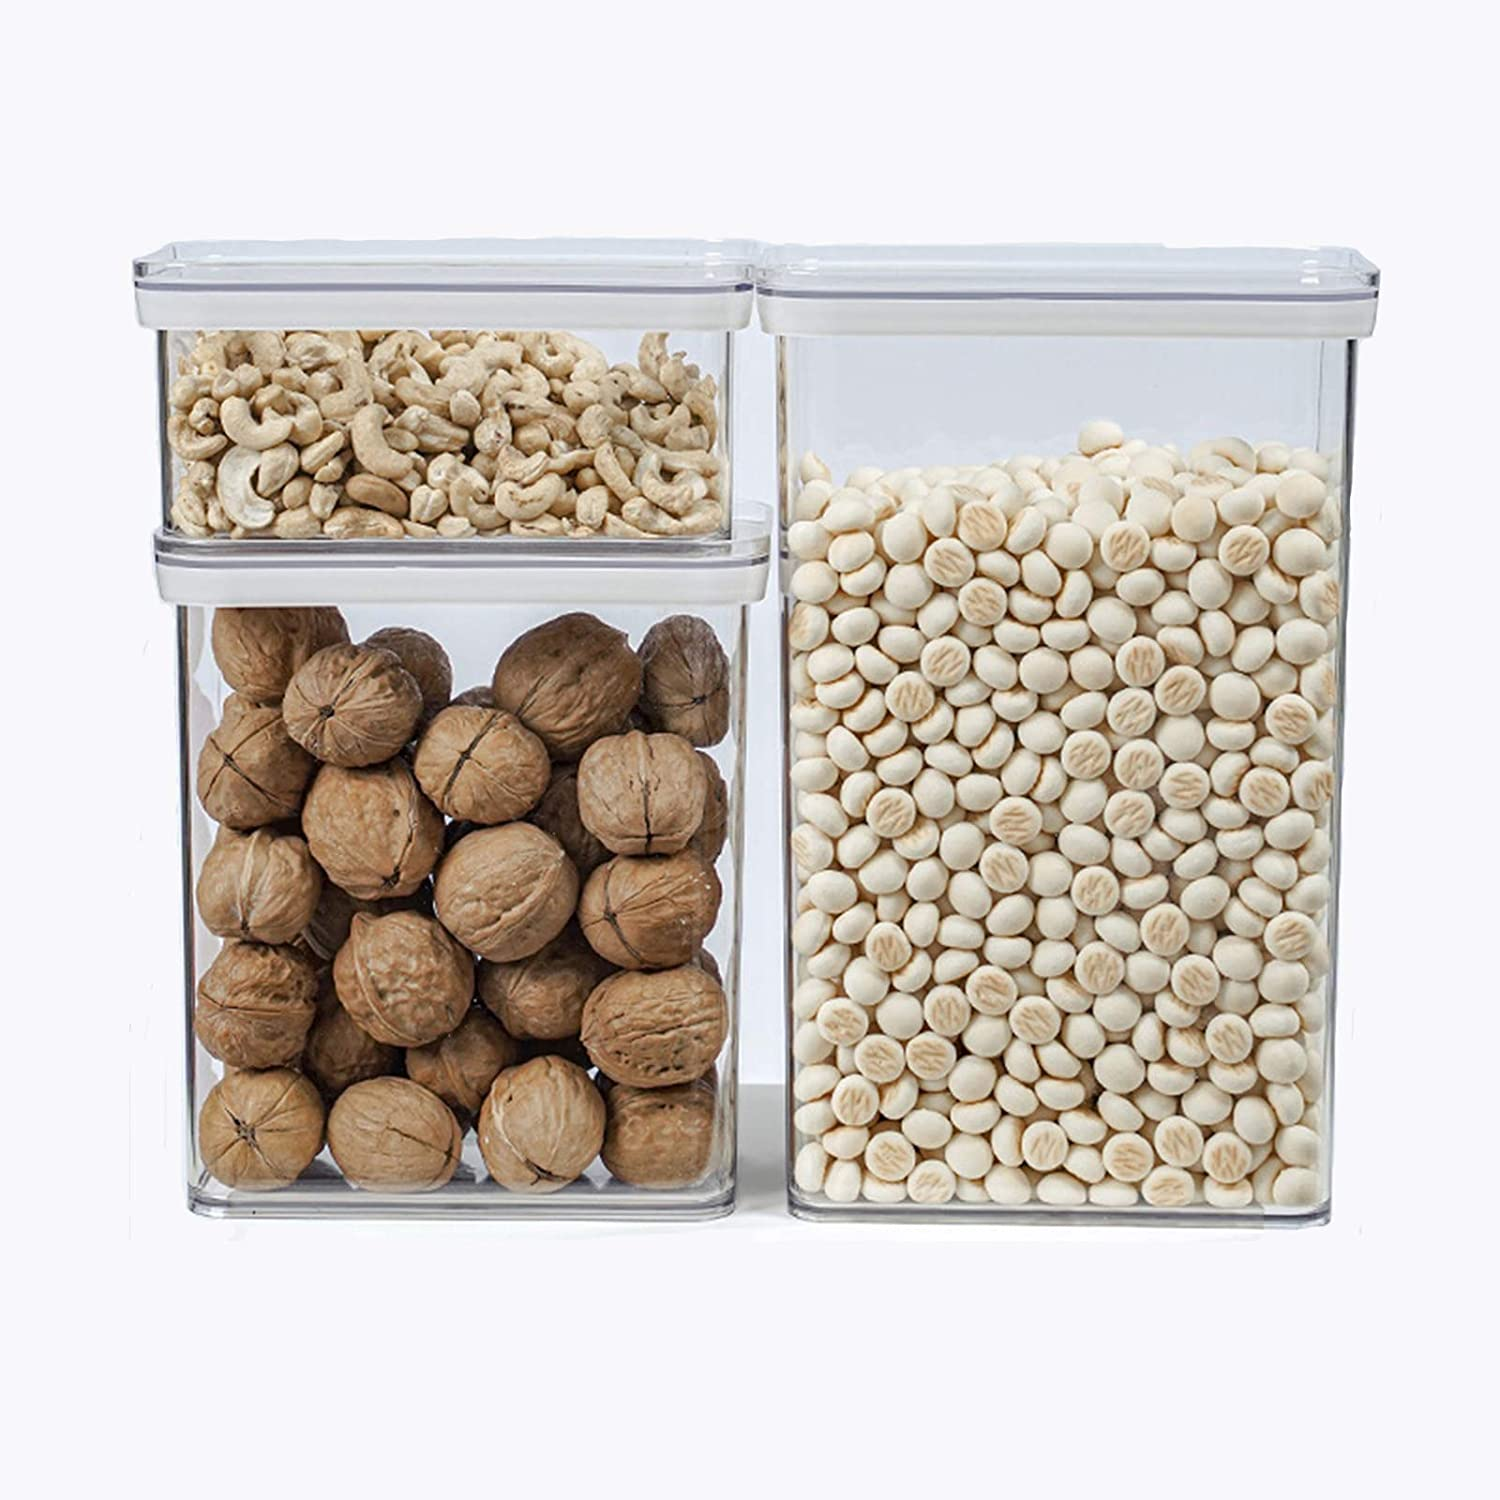 LWKBE Food Storage Containers with Easy-Lock Lid, Airtight Cerea